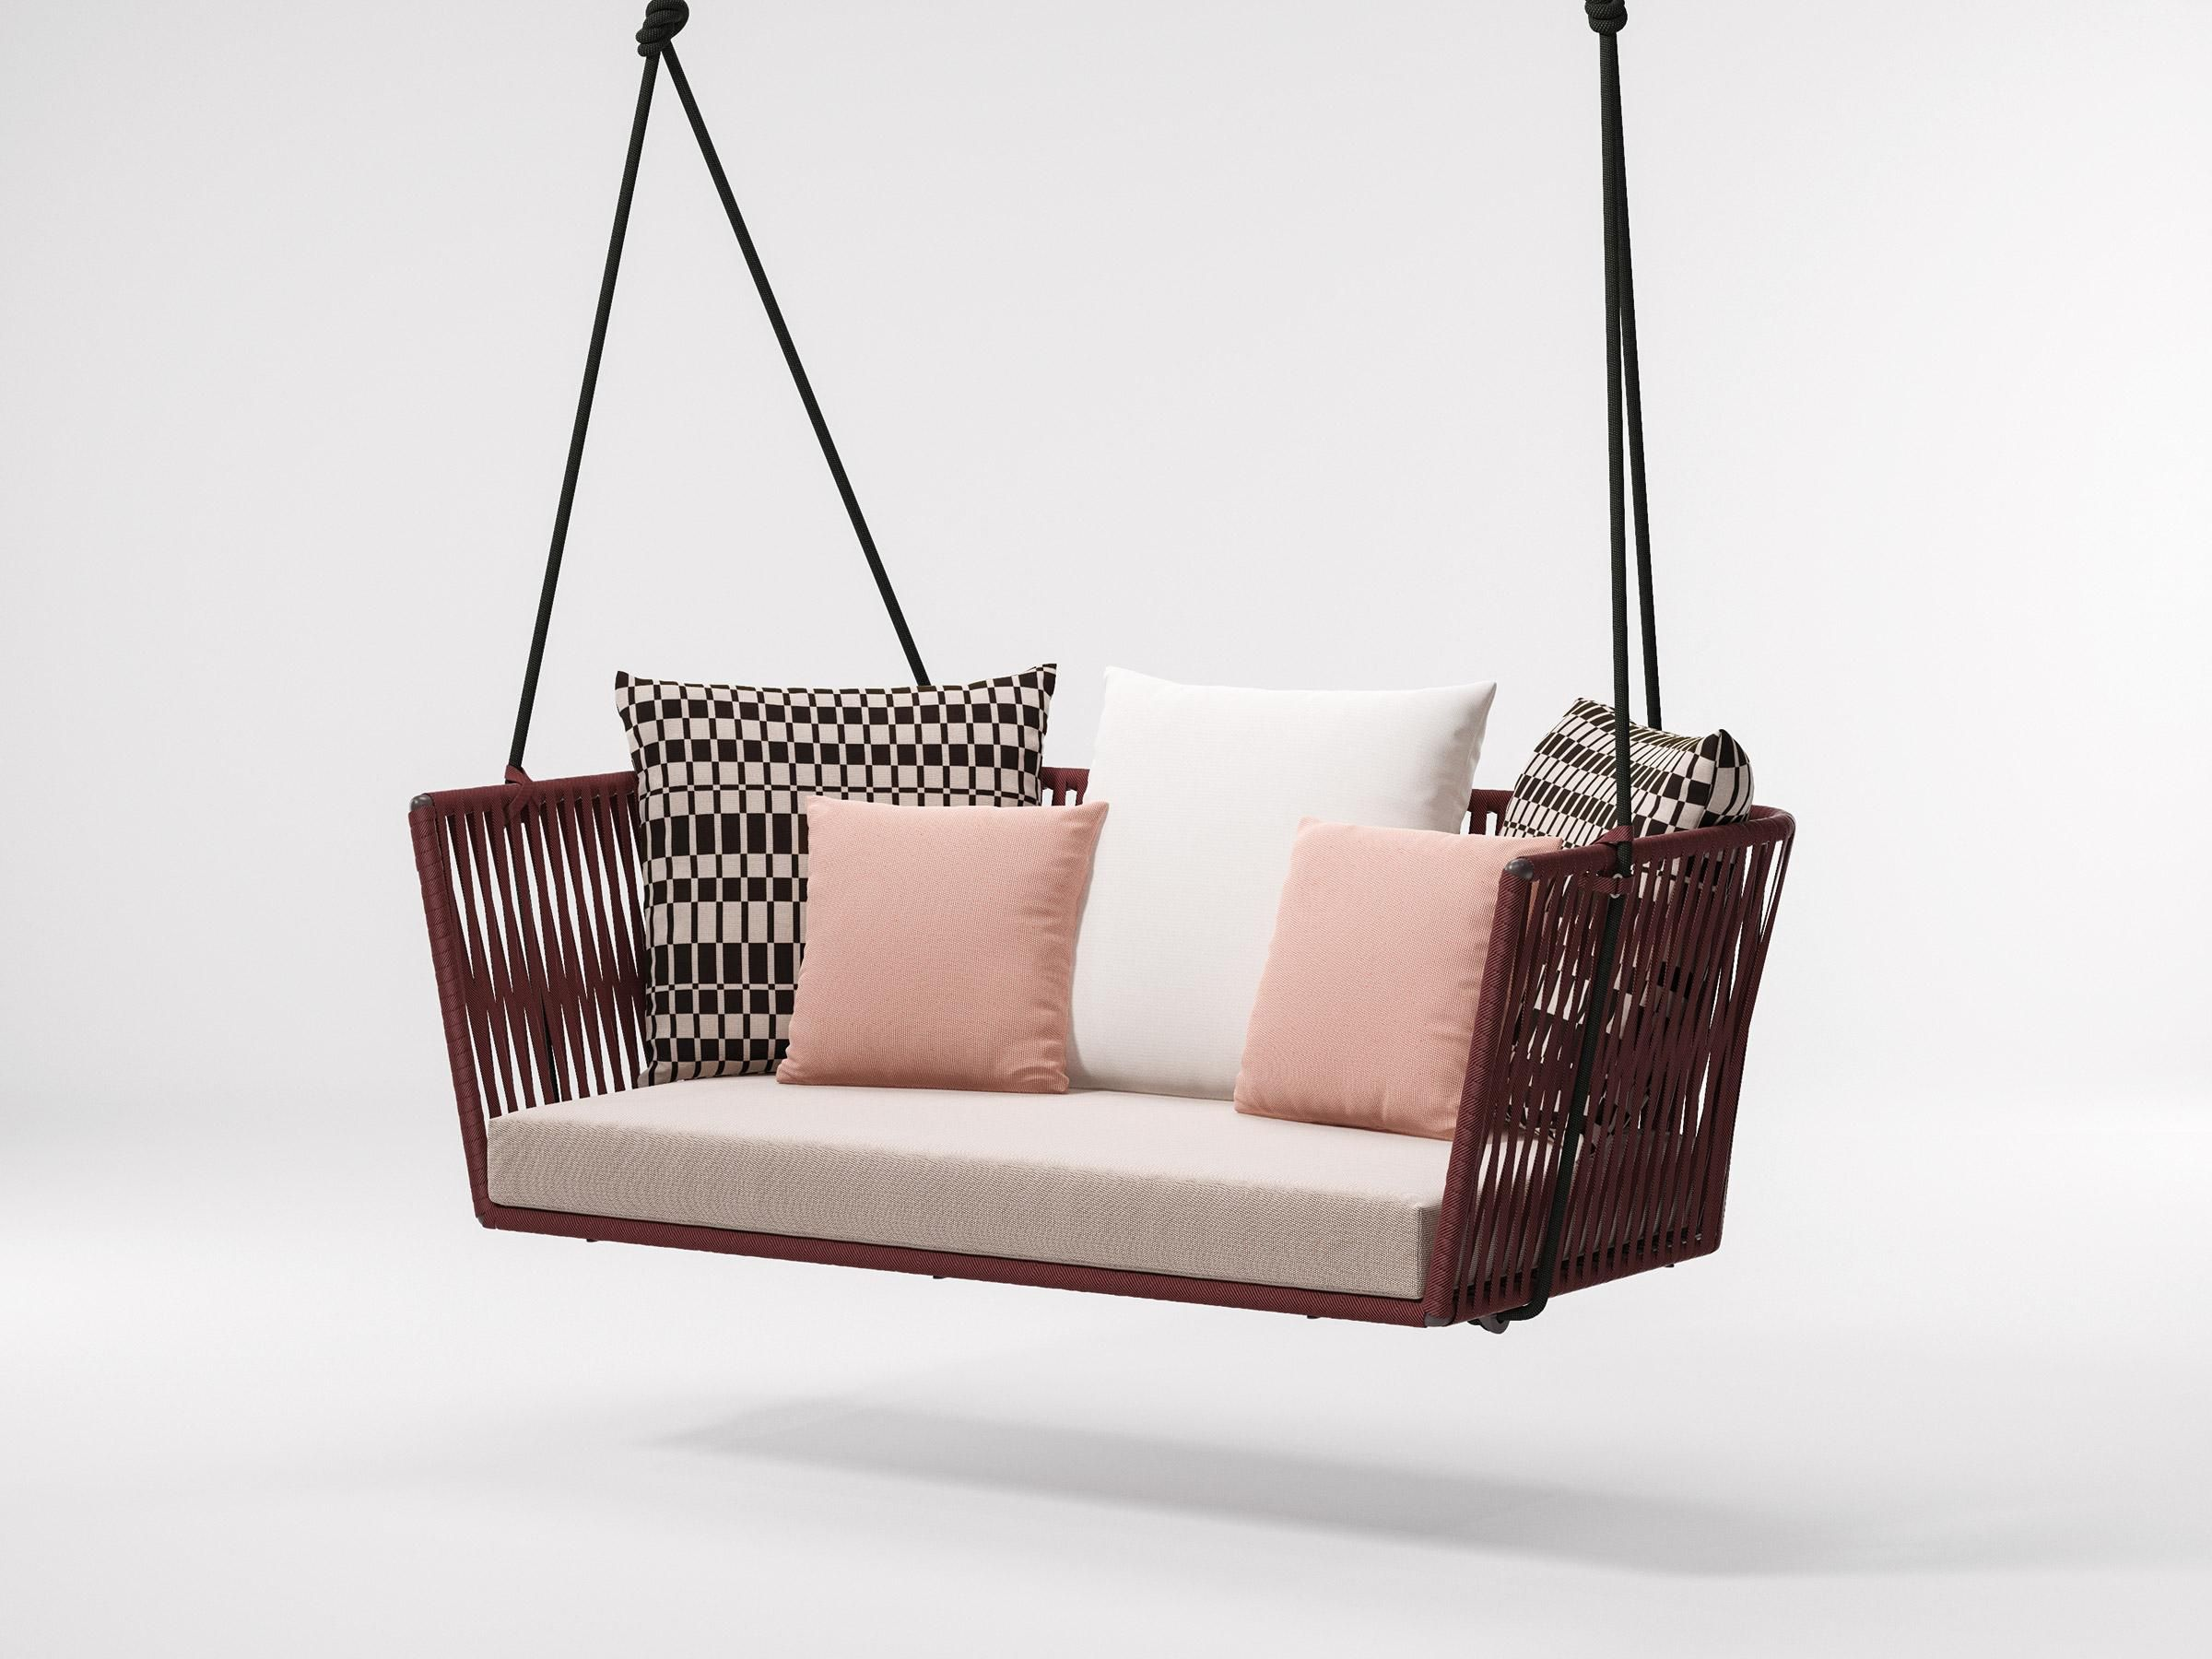 Kettal Bitta Swing Sofa Hanging Garden Chair Small Balcony Decor Hanging Chair Outdoor